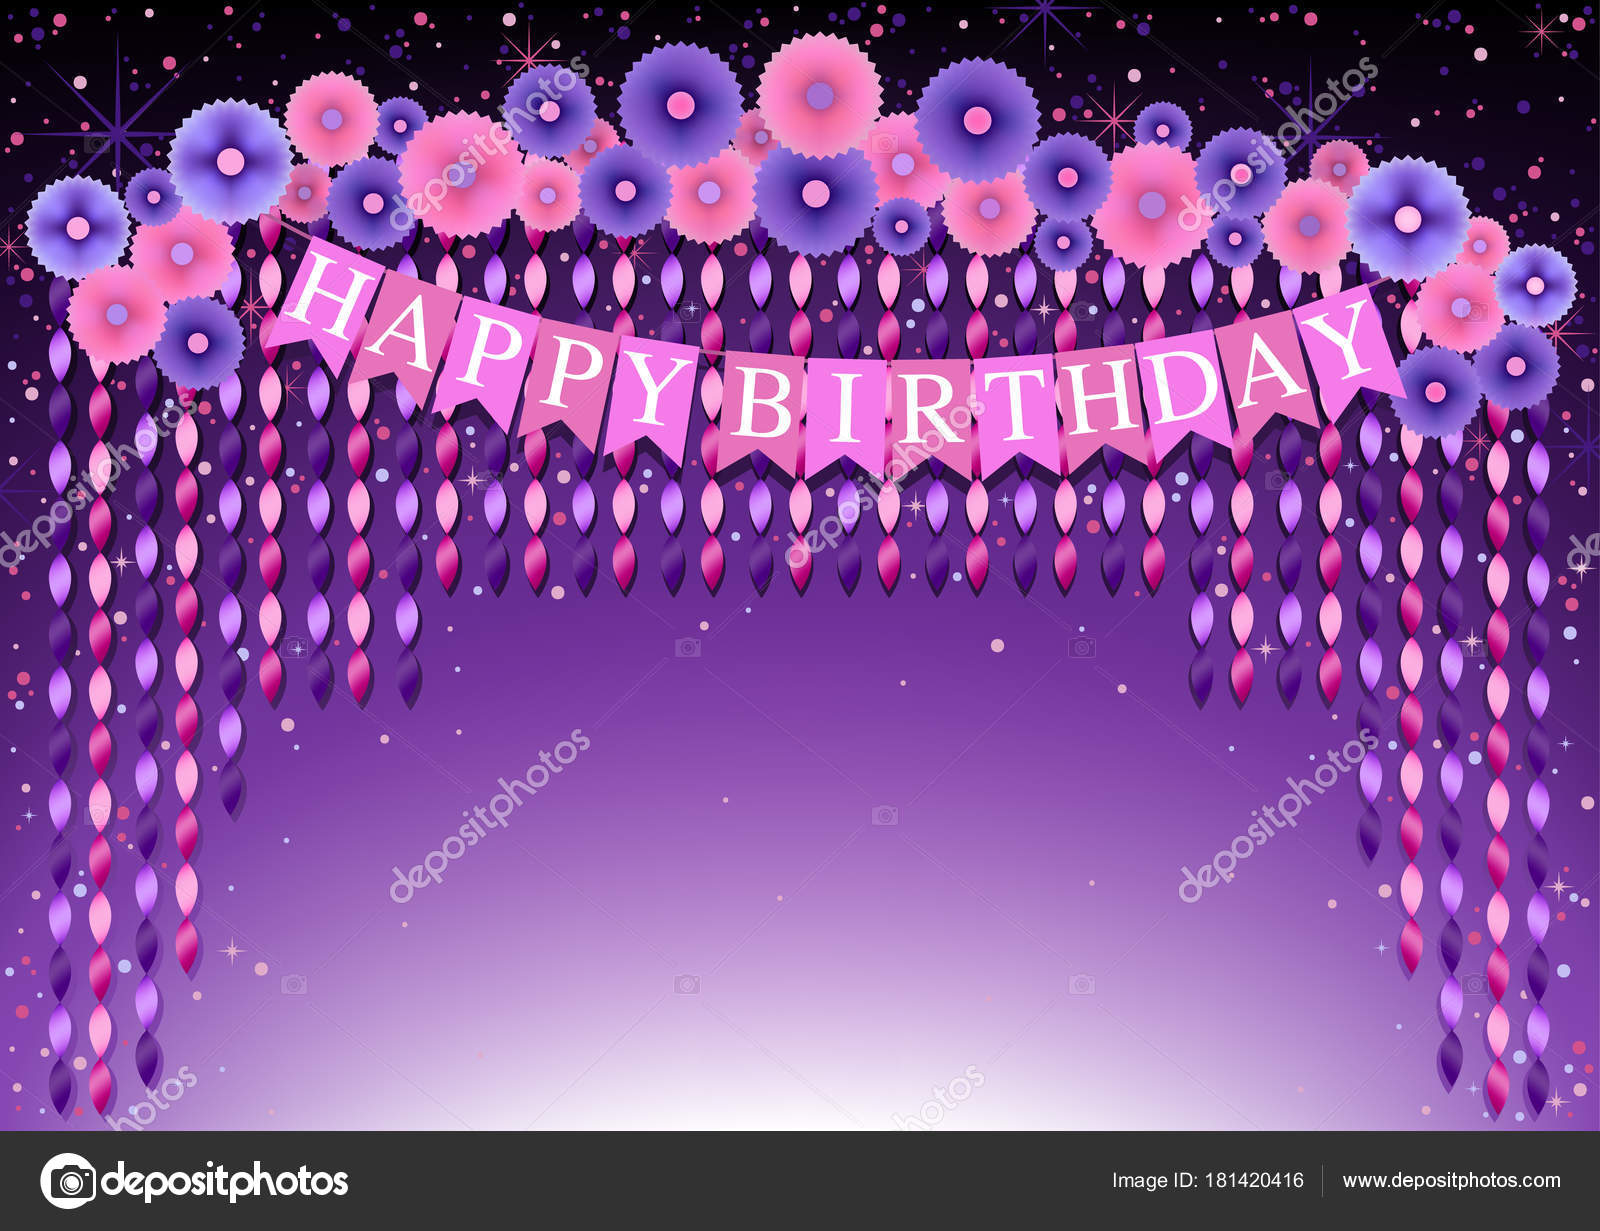 Happy birthday background purple pink paper flowers hanging twisted happy birthday background purple pink paper flowers hanging twisted ribbons stock vector mightylinksfo